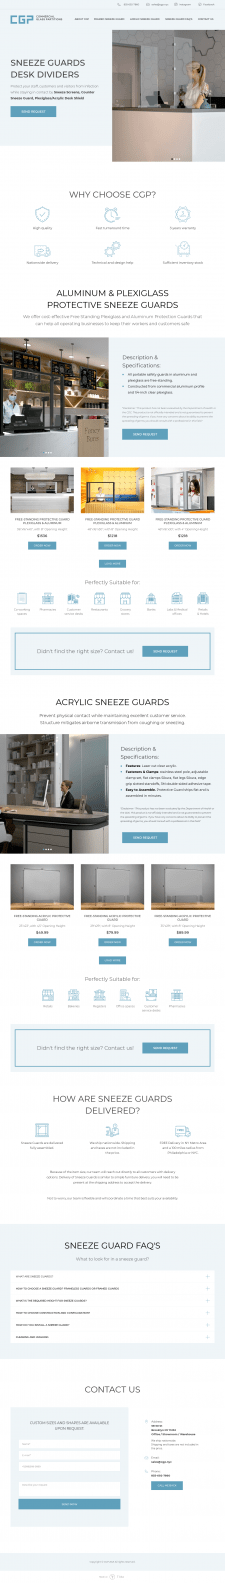 Protective Sneeze Guards & Workplace Barriers | CG